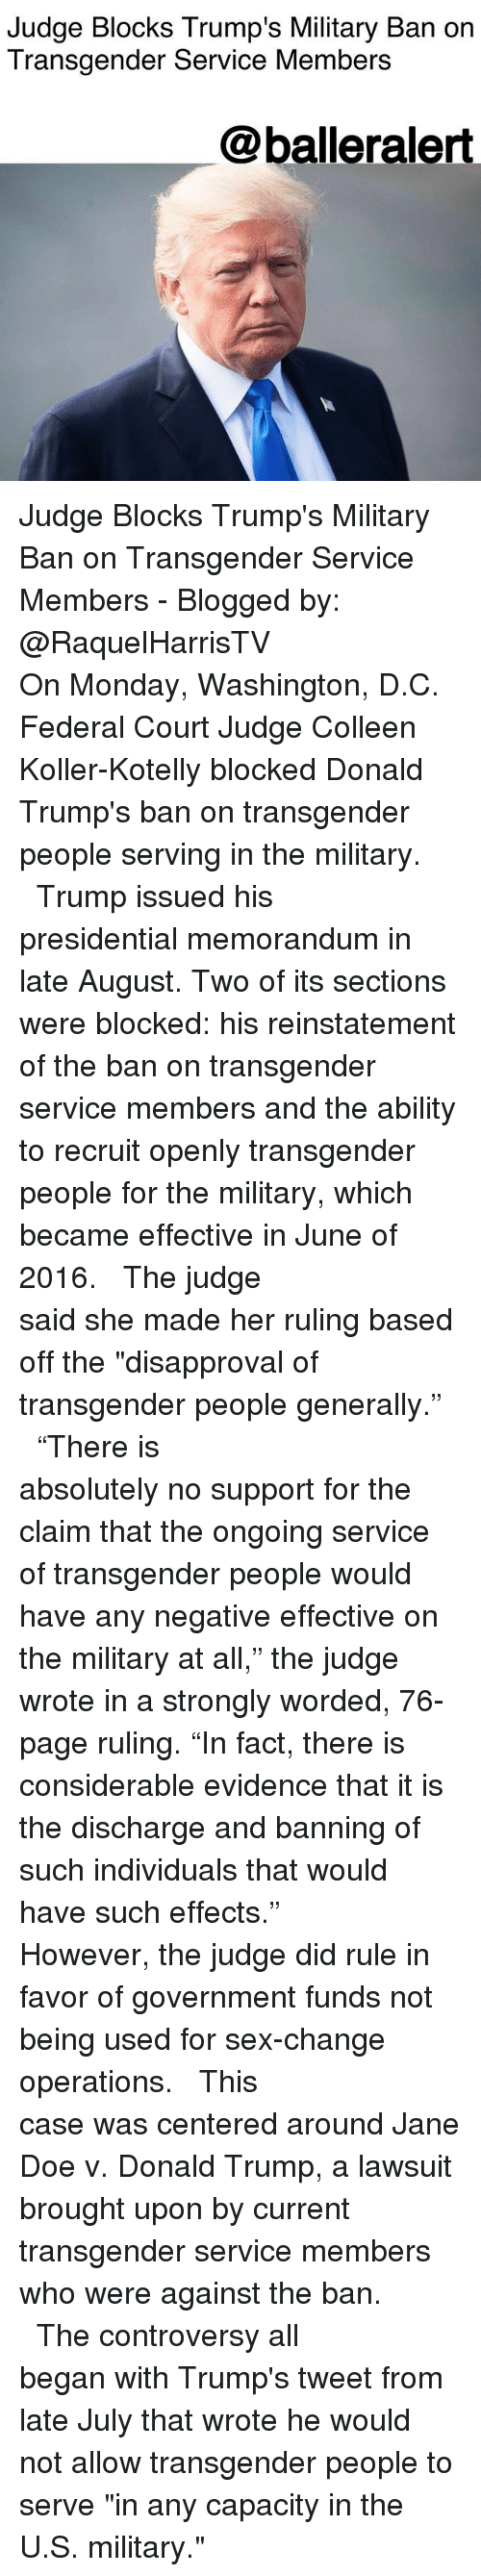 "discharge: Judge Blocks Trump's Military Ban on  Transgender Service Members  @balleralert Judge Blocks Trump's Military Ban on Transgender Service Members - Blogged by: @RaquelHarrisTV ⠀⠀⠀⠀⠀⠀⠀⠀⠀ ⠀⠀⠀⠀⠀⠀⠀⠀⠀ On Monday, Washington, D.C. Federal Court Judge Colleen Koller-Kotelly blocked Donald Trump's ban on transgender people serving in the military. ⠀⠀⠀⠀⠀⠀⠀⠀⠀ ⠀⠀⠀⠀⠀⠀⠀⠀⠀ Trump issued his presidential memorandum in late August. Two of its sections were blocked: his reinstatement of the ban on transgender service members and the ability to recruit openly transgender people for the military, which became effective in June of 2016. ⠀⠀⠀⠀⠀⠀⠀⠀⠀ ⠀⠀⠀⠀⠀⠀⠀⠀⠀ The judge said she made her ruling based off the ""disapproval of transgender people generally."" ⠀⠀⠀⠀⠀⠀⠀⠀⠀ ⠀⠀⠀⠀⠀⠀⠀⠀⠀ ""There is absolutely no support for the claim that the ongoing service of transgender people would have any negative effective on the military at all,"" the judge wrote in a strongly worded, 76-page ruling. ""In fact, there is considerable evidence that it is the discharge and banning of such individuals that would have such effects."" ⠀⠀⠀⠀⠀⠀⠀⠀⠀ ⠀⠀⠀⠀⠀⠀⠀⠀⠀ However, the judge did rule in favor of government funds not being used for sex-change operations. ⠀⠀⠀⠀⠀⠀⠀⠀⠀ ⠀⠀⠀⠀⠀⠀⠀⠀⠀ This case was centered around Jane Doe v. Donald Trump, a lawsuit brought upon by current transgender service members who were against the ban. ⠀⠀⠀⠀⠀⠀⠀⠀⠀ ⠀⠀⠀⠀⠀⠀⠀⠀⠀ The controversy all began with Trump's tweet from late July that wrote he would not allow transgender people to serve ""in any capacity in the U.S. military."""